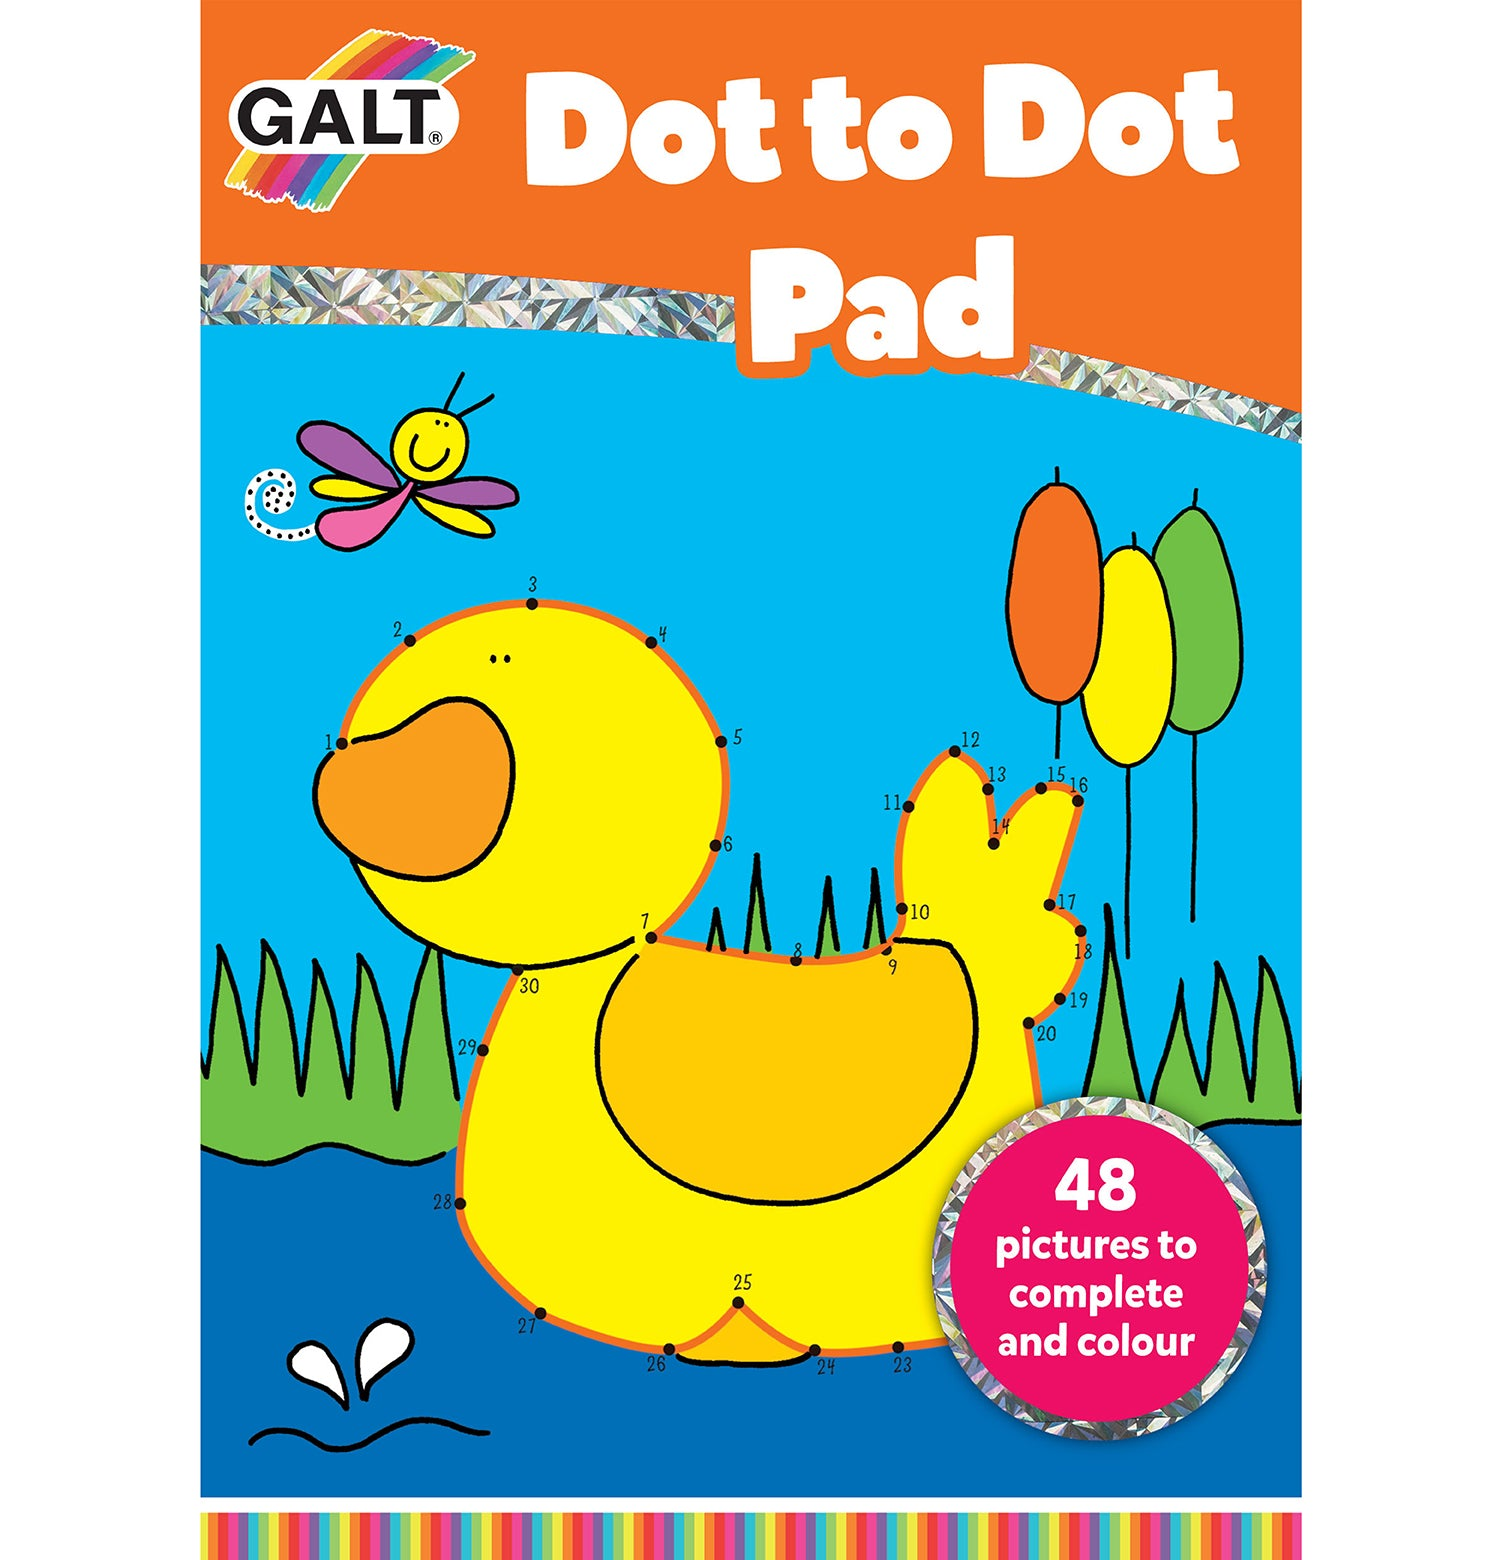 Dot to Dot Pad - Galt